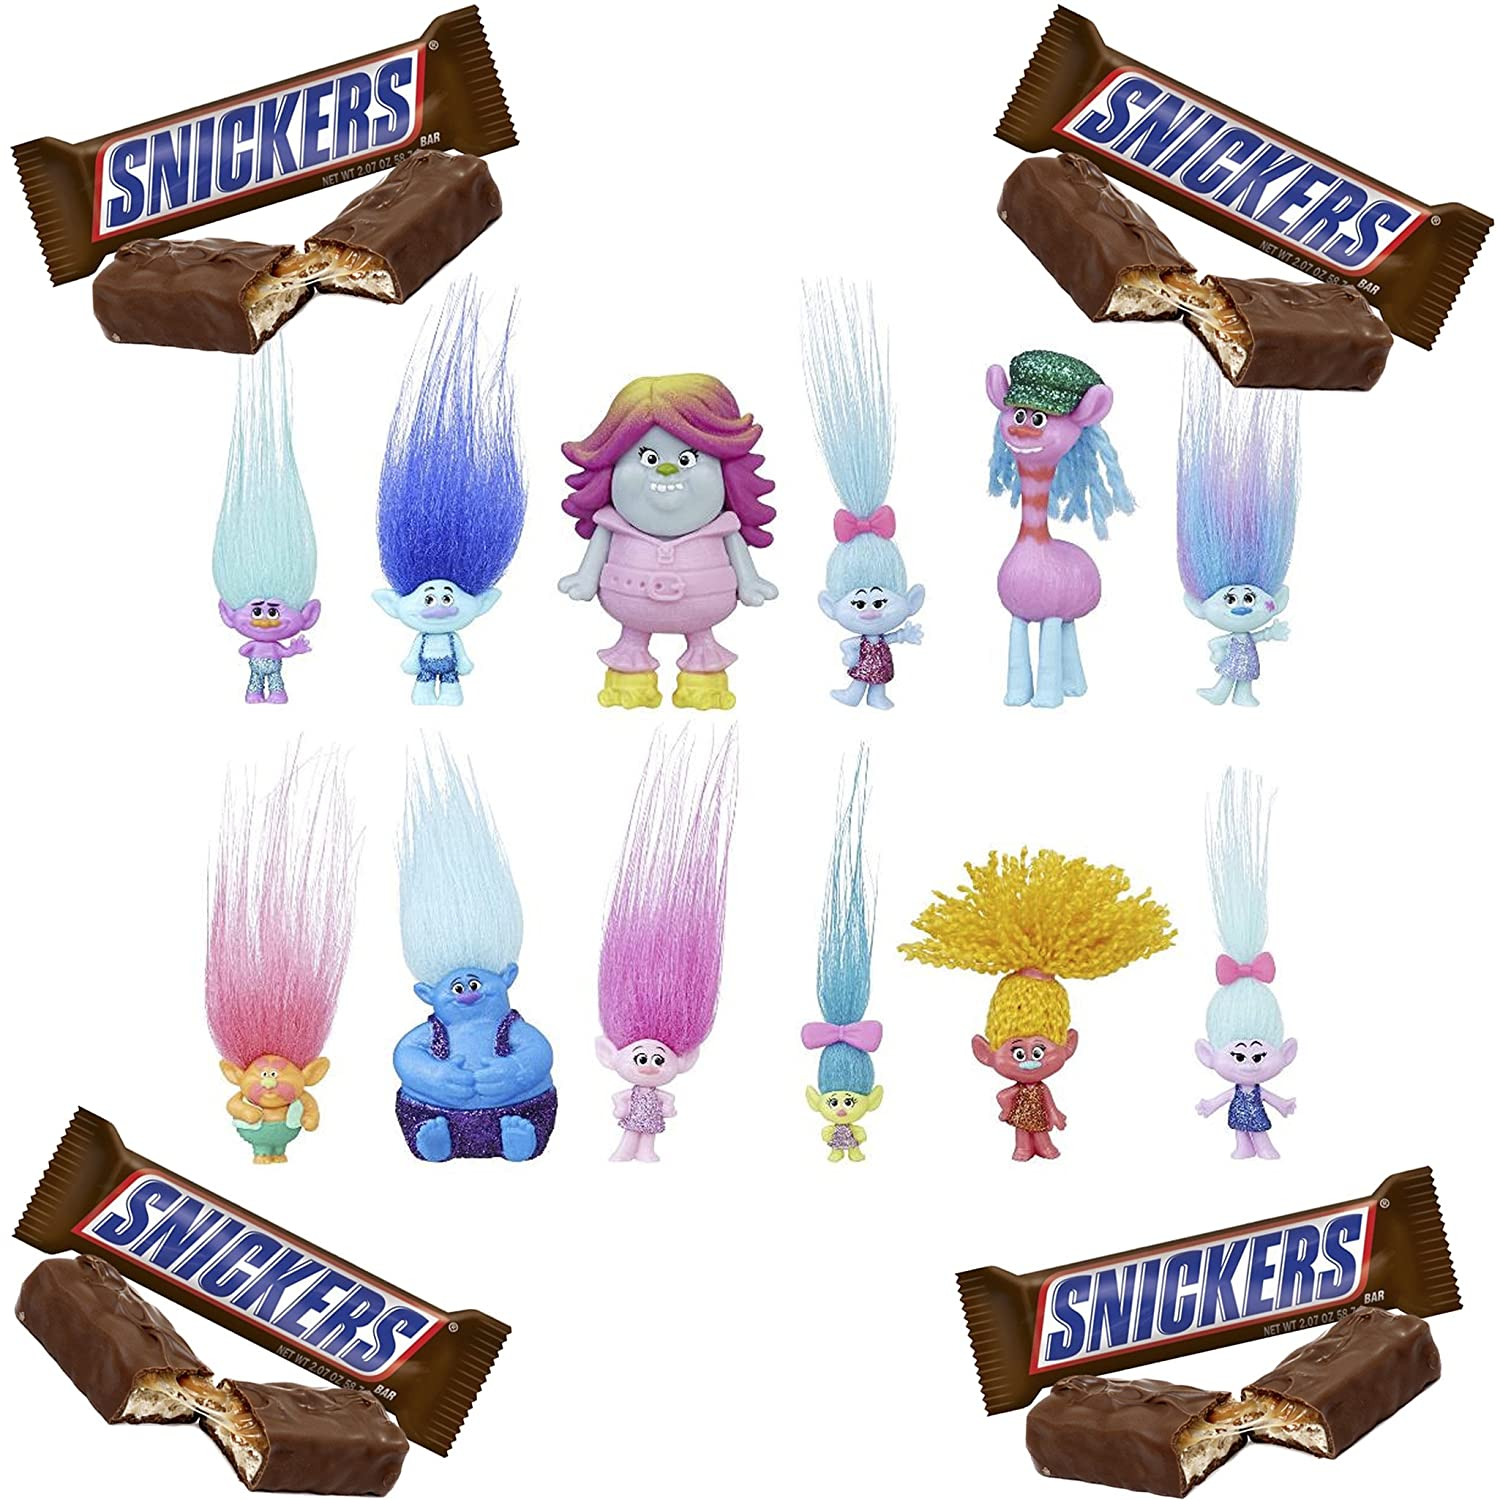 Trolls DreamWorks Toys Surprise Mini Figure Series 6 with Snickers Chocolate Candy Bars Singles Size 4 Bars Snickers Snack 1.86-Ounce Bars Includes 2 Random Blind Bags of Series 6 Mini Toys